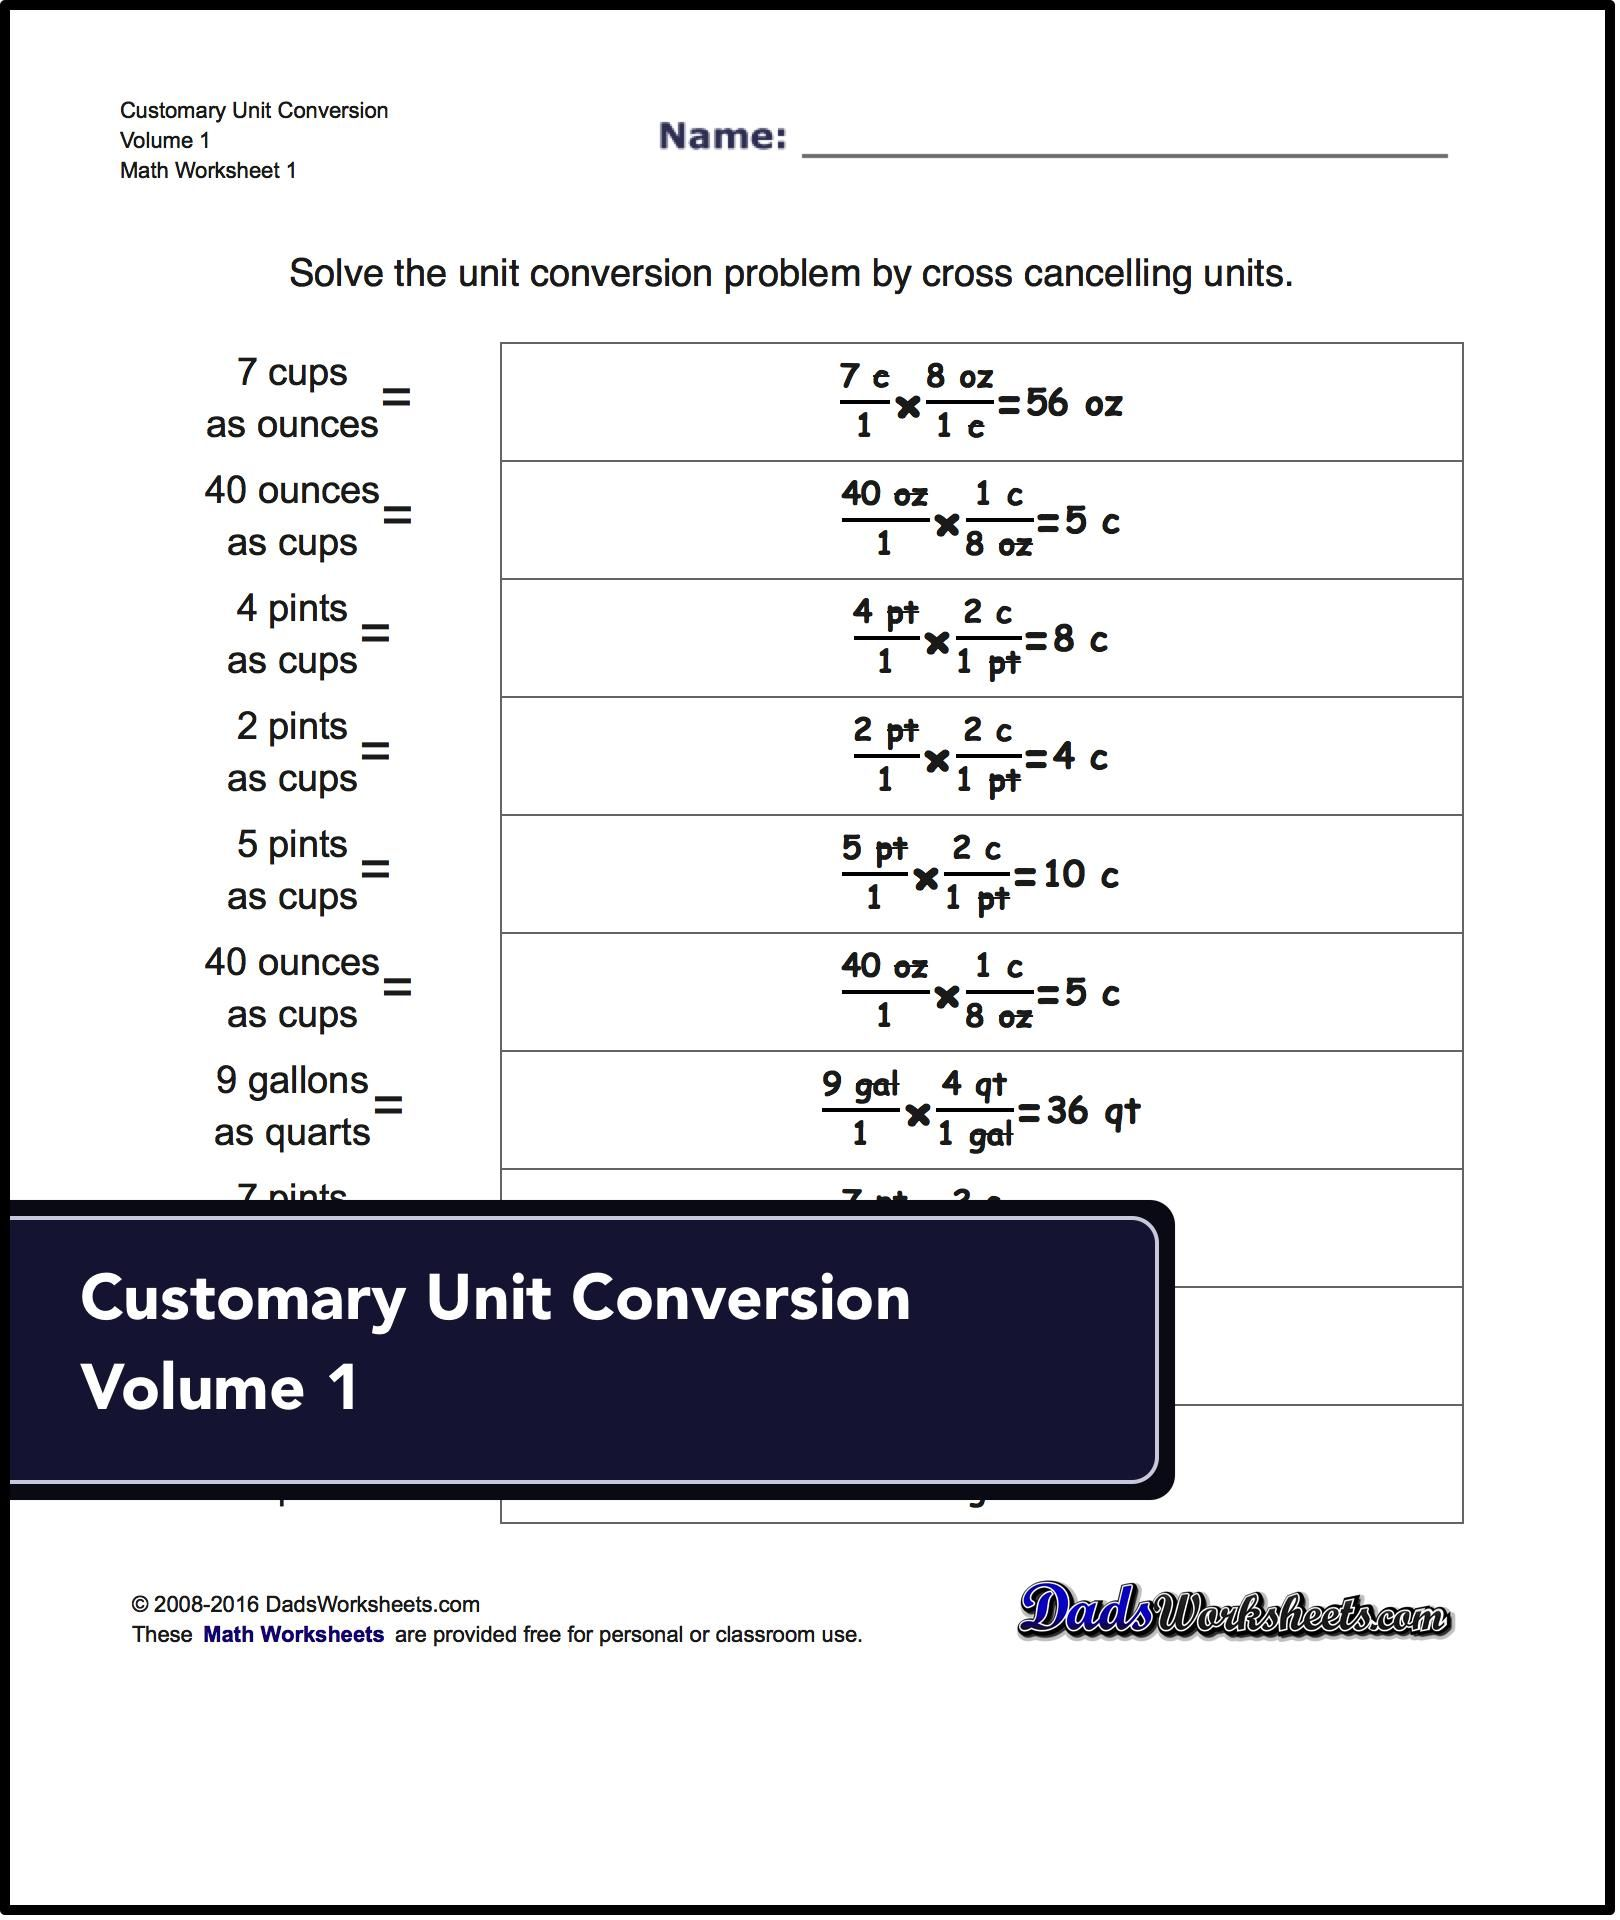 Uncategorized Converting Inches To Feet Worksheet unit conversion worksheets for converting customary volume units the system commonly used in united states length inches to feet and similar volum